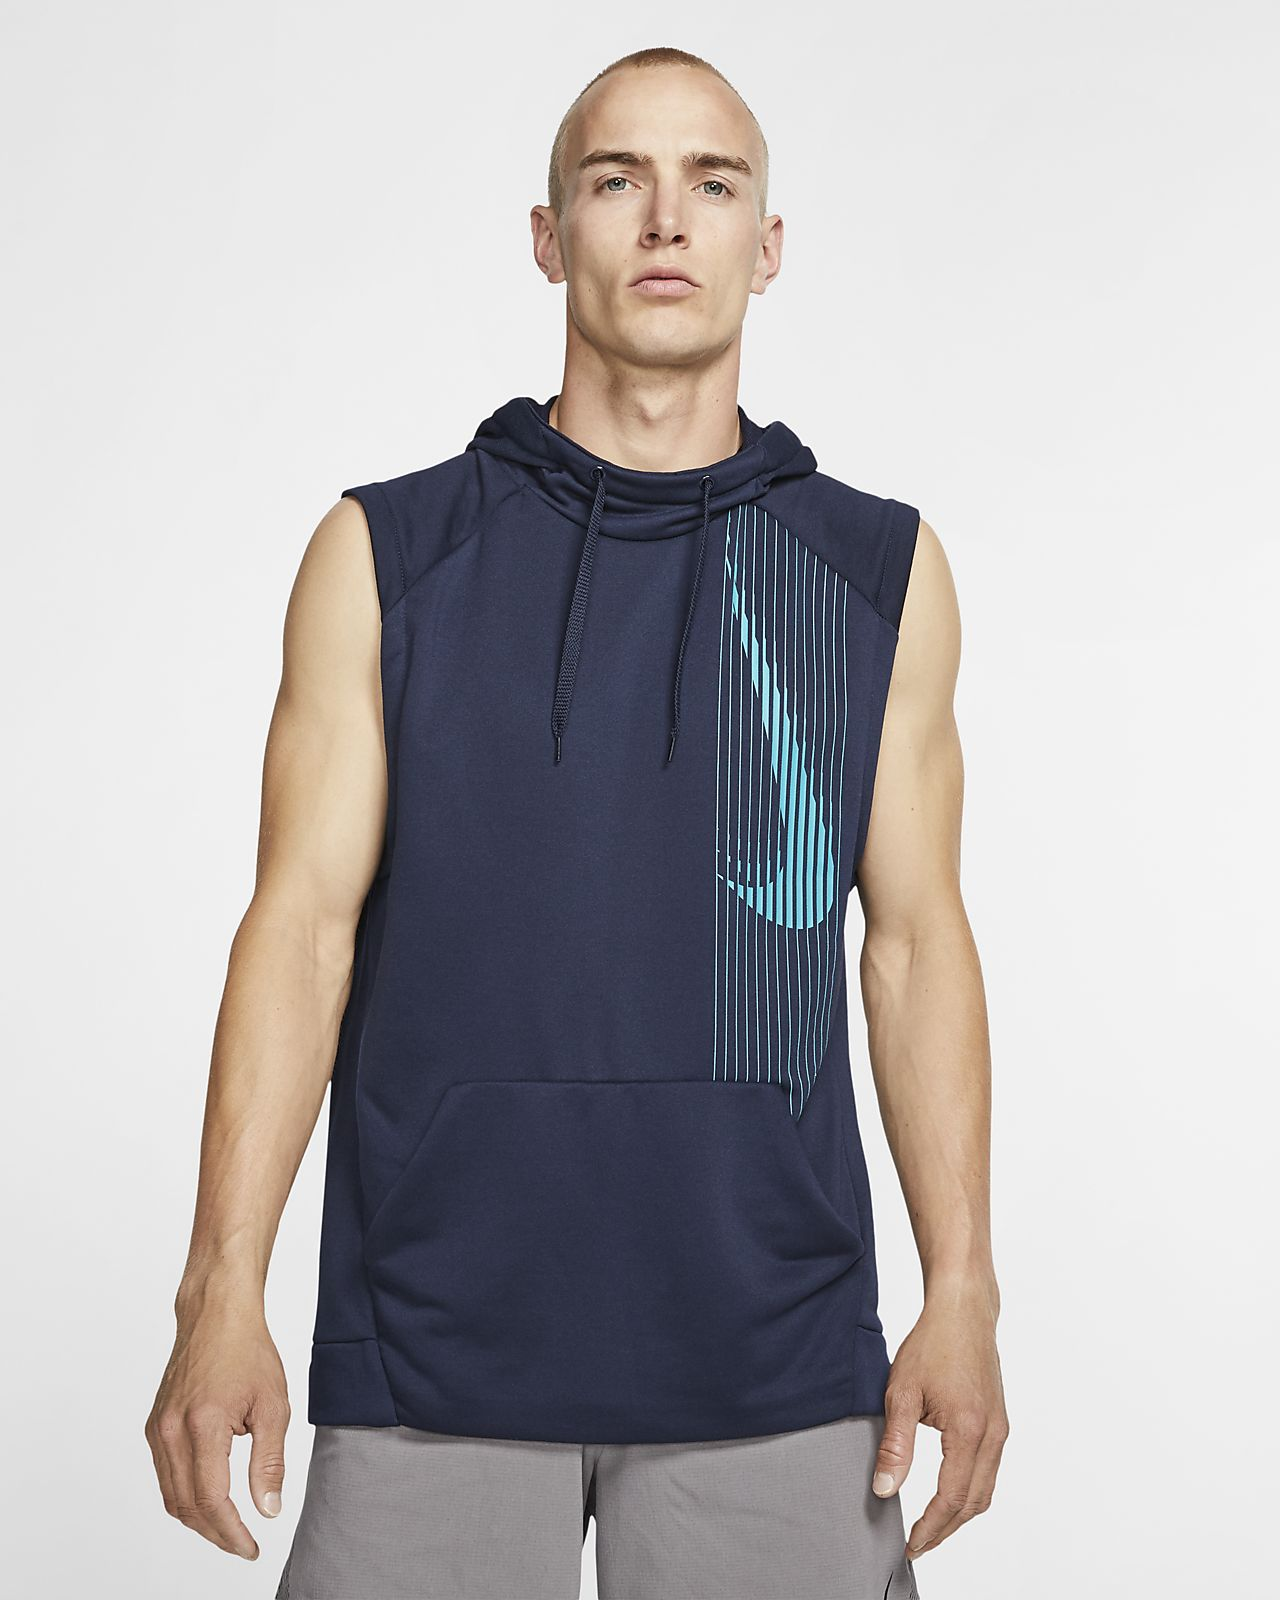 Sweat à capuche de training sans manches Nike Dri-FIT pour Homme